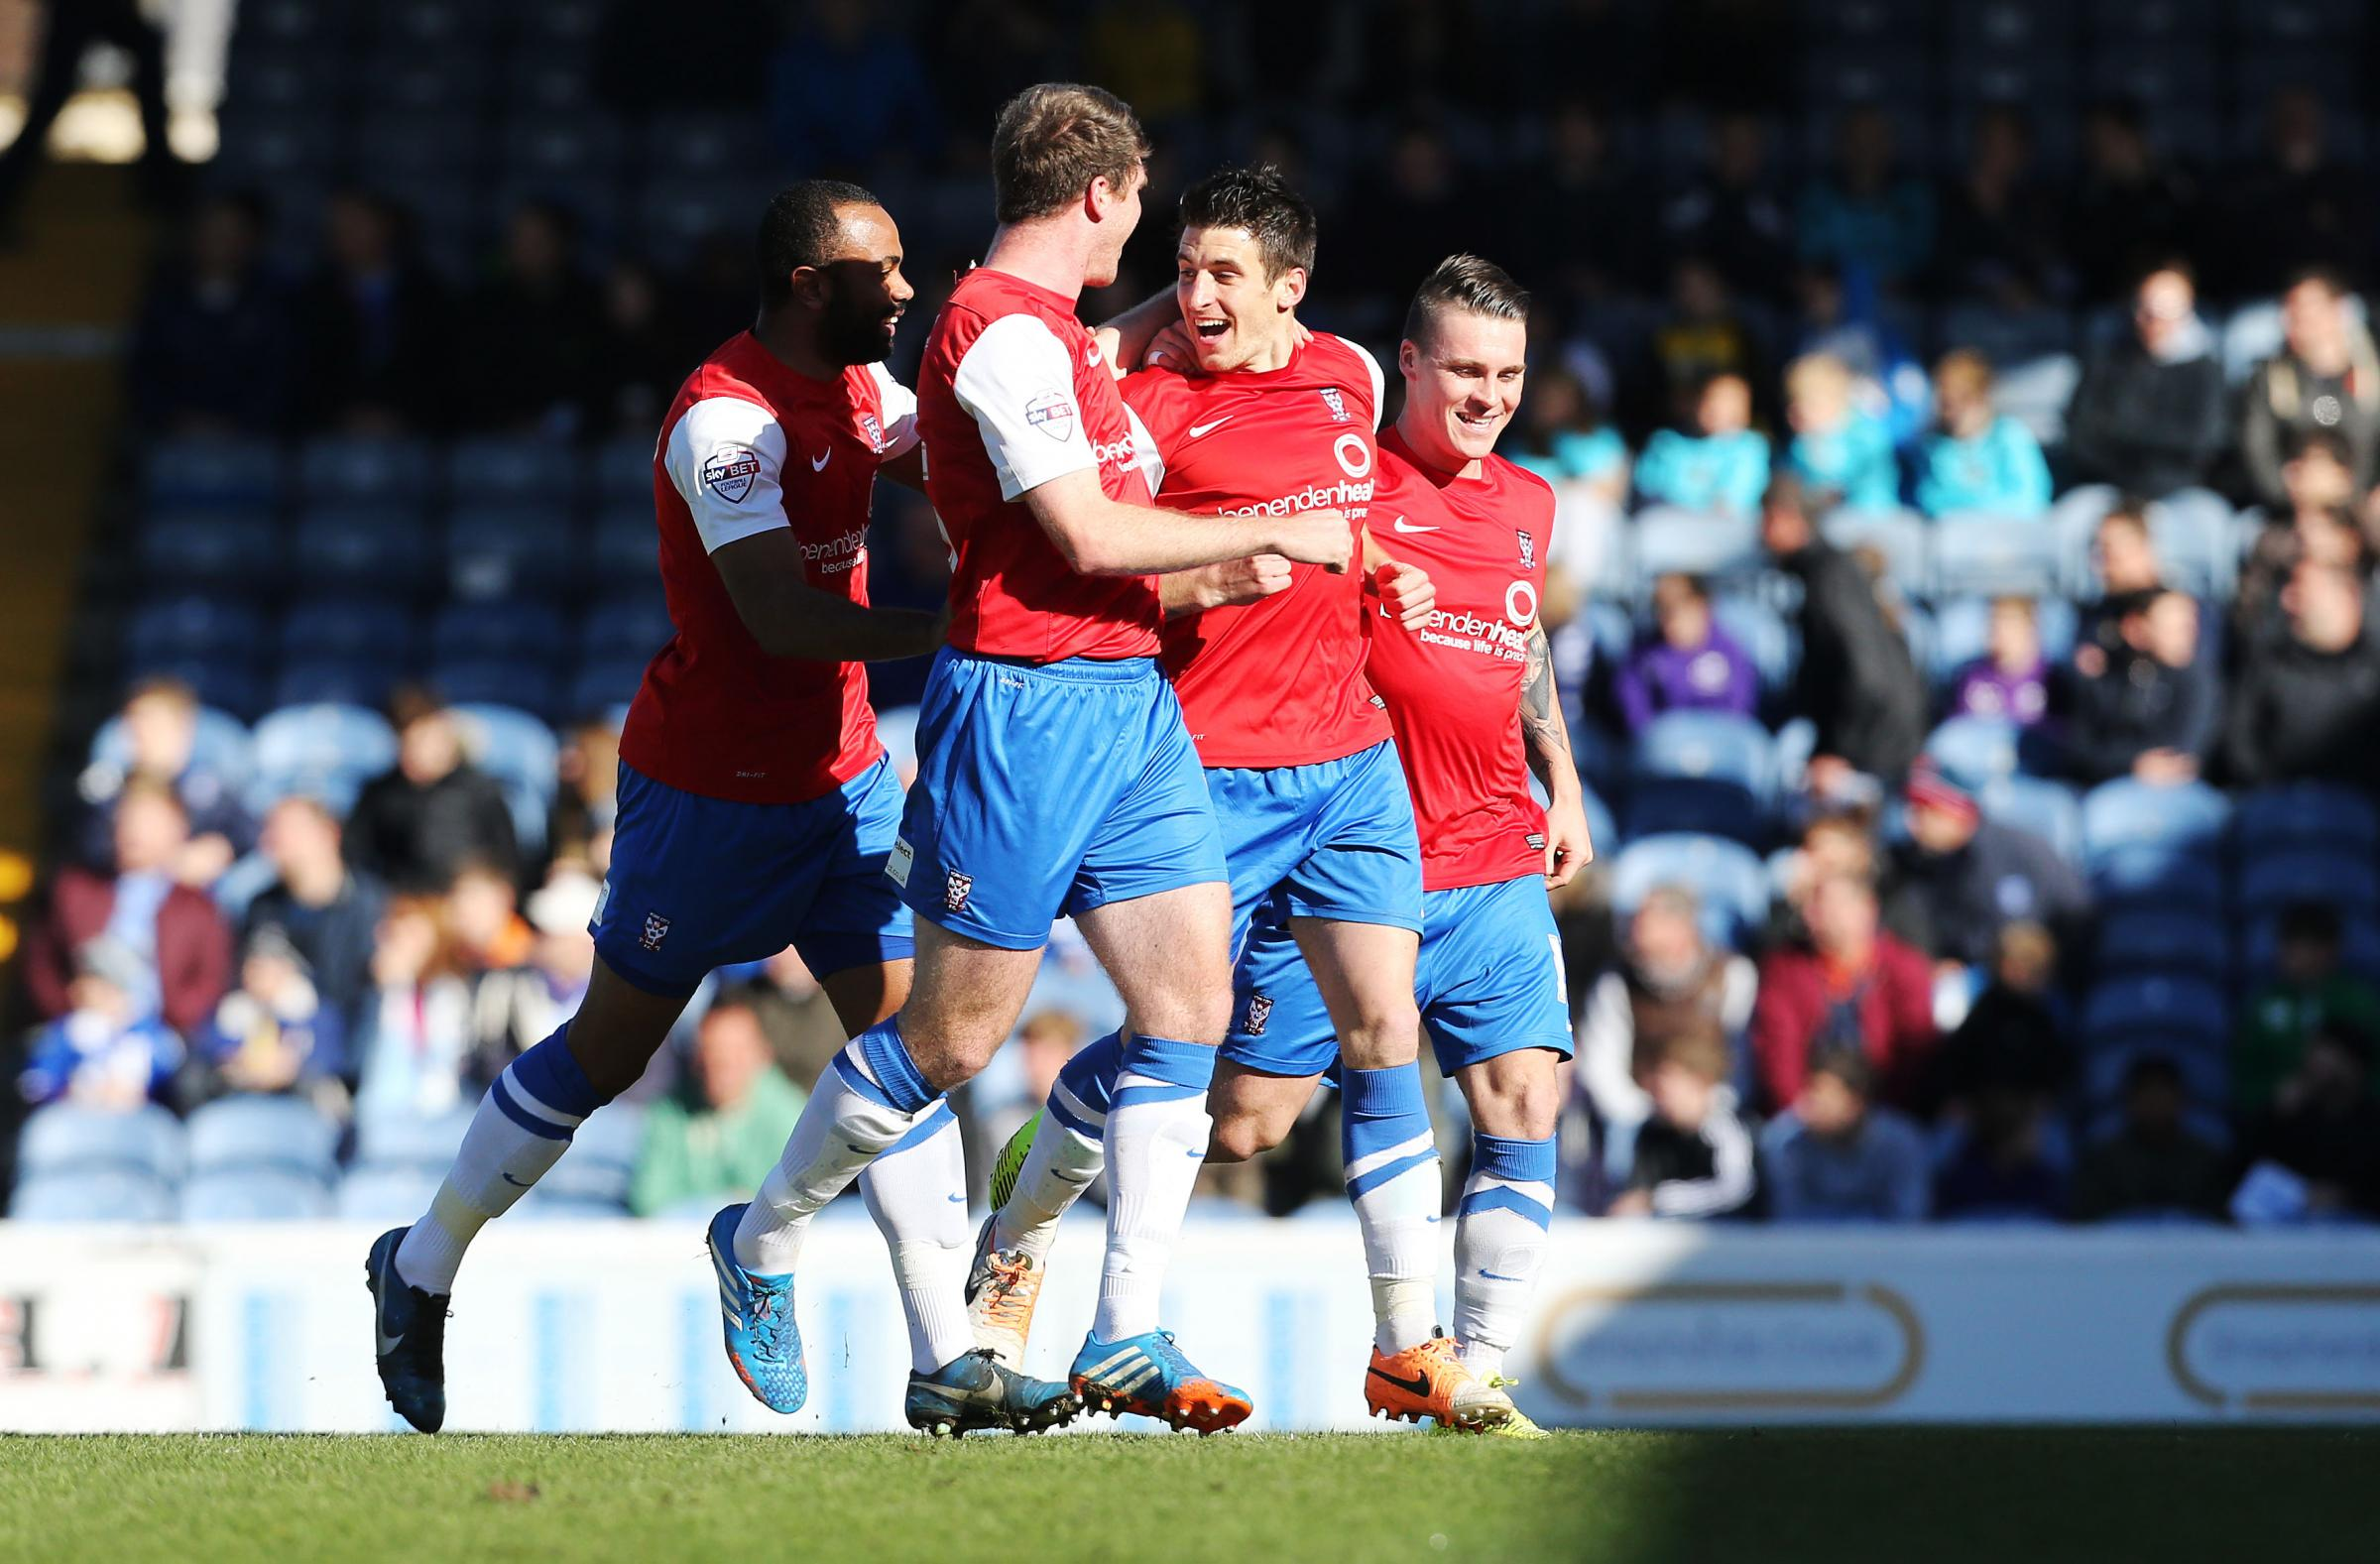 York City beat Portsmouth 1-0 to move into Sky Bet League Two play-off zone